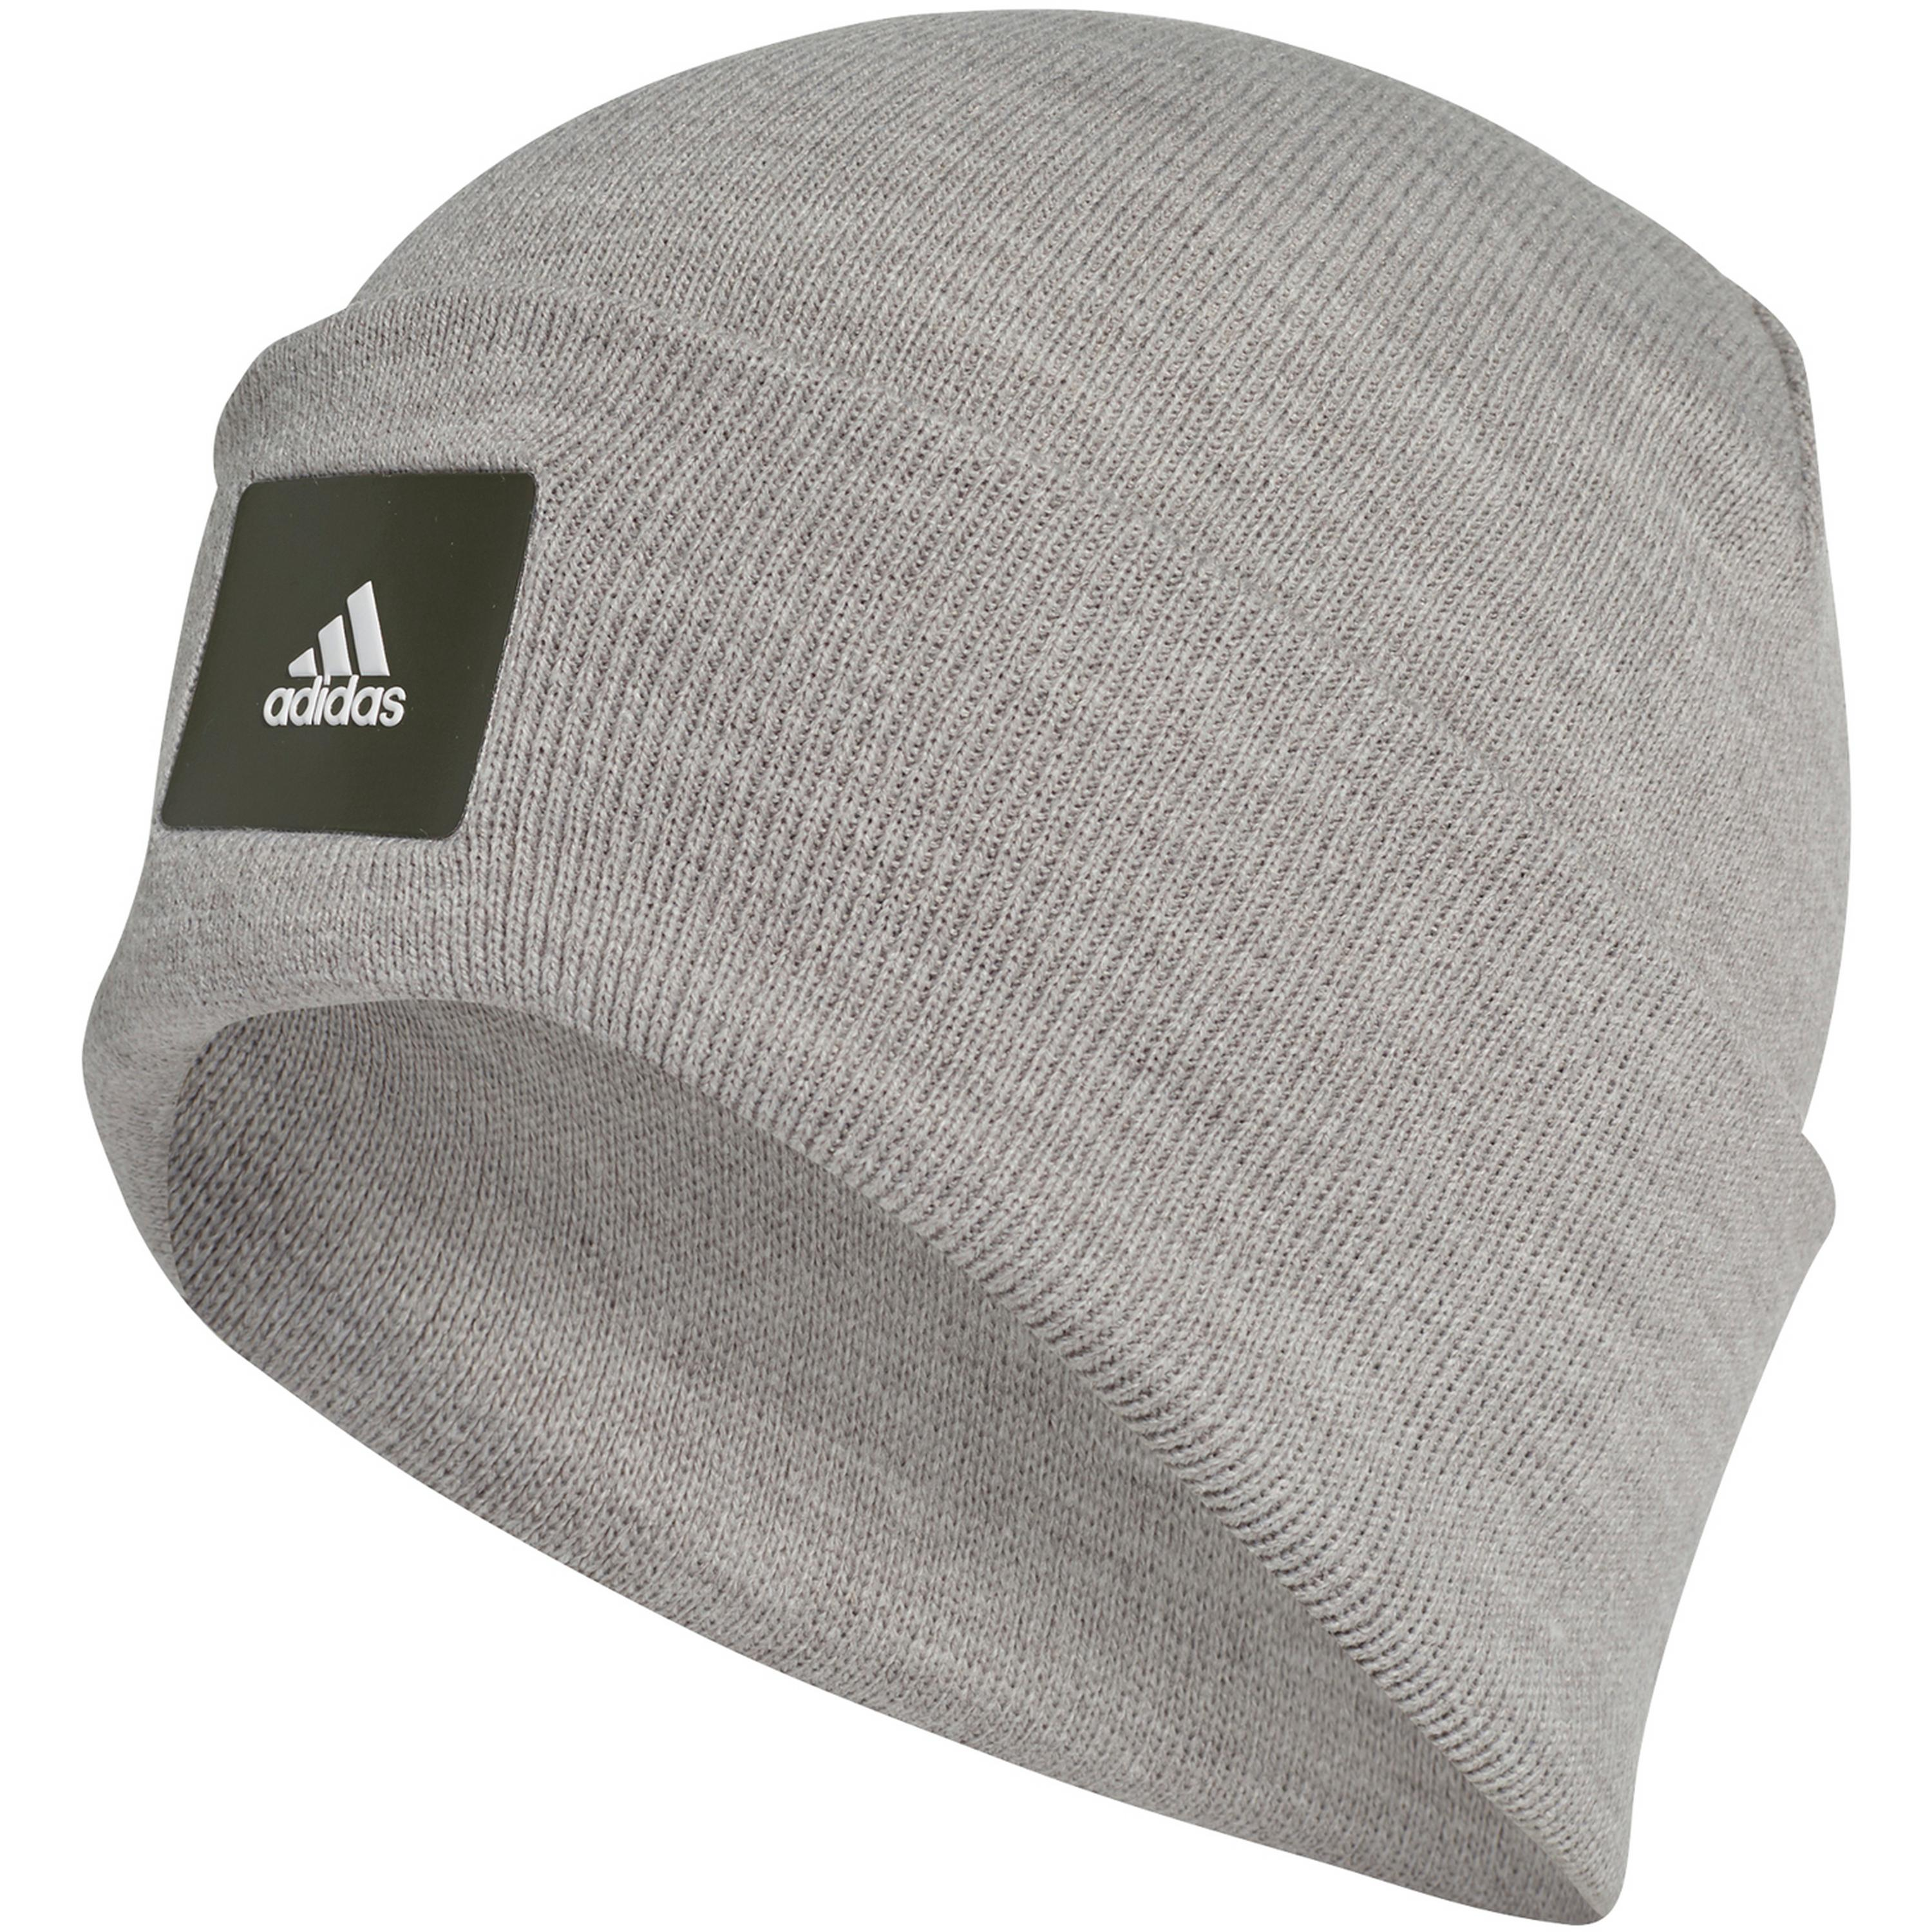 Image of adidas Teen Size Beanie Kinder